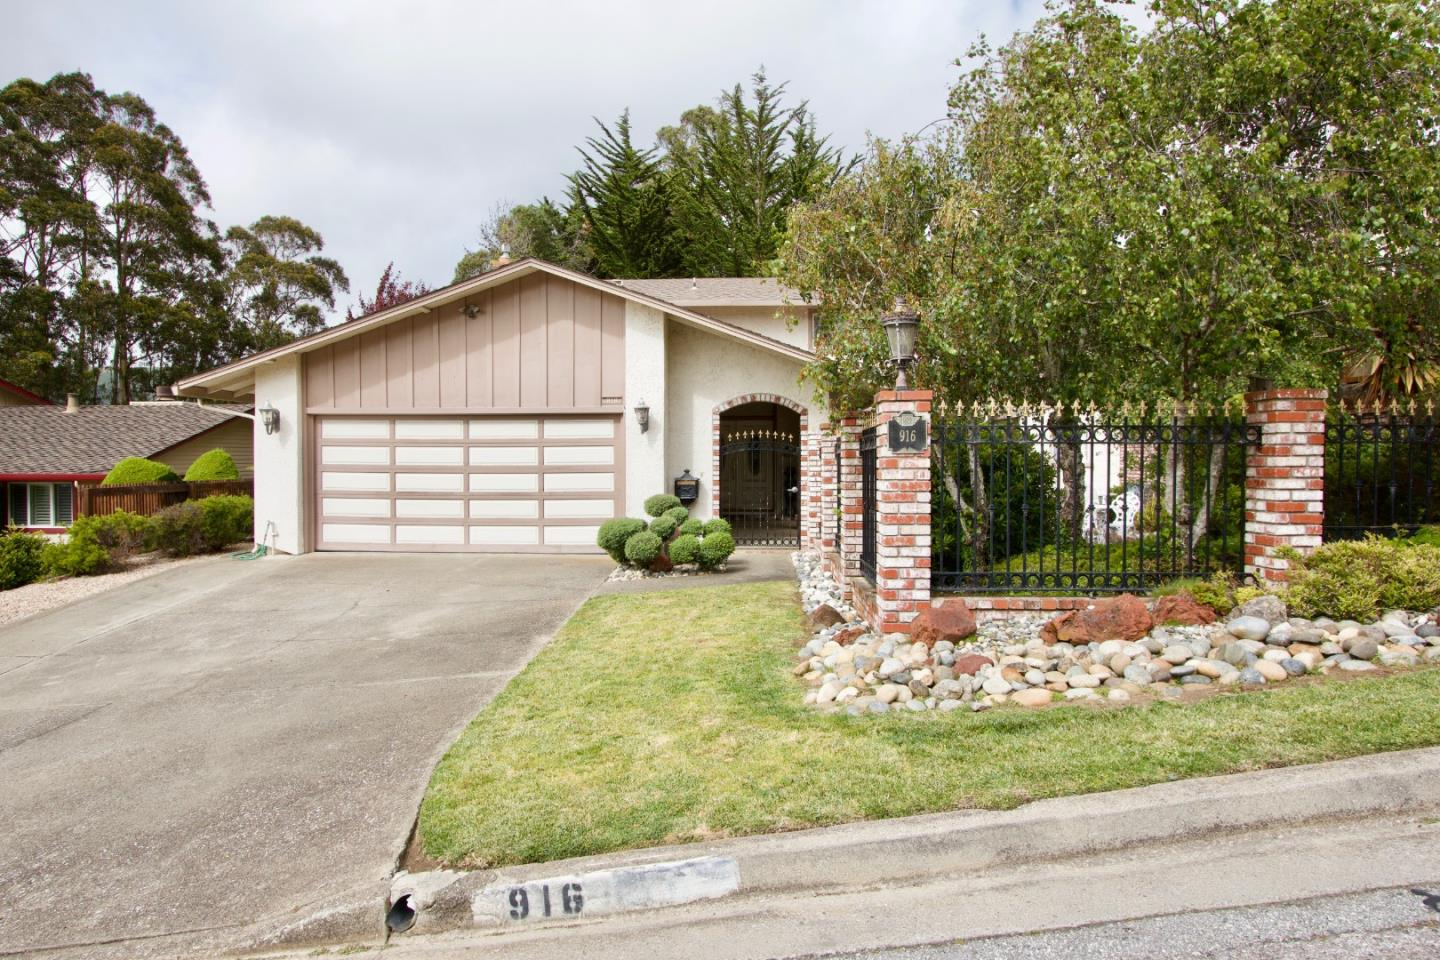 Detail Gallery Image 1 of 7 For 916 Park Pacifica Ave, Pacifica, CA 94044 - 4 Beds | 2/1 Baths